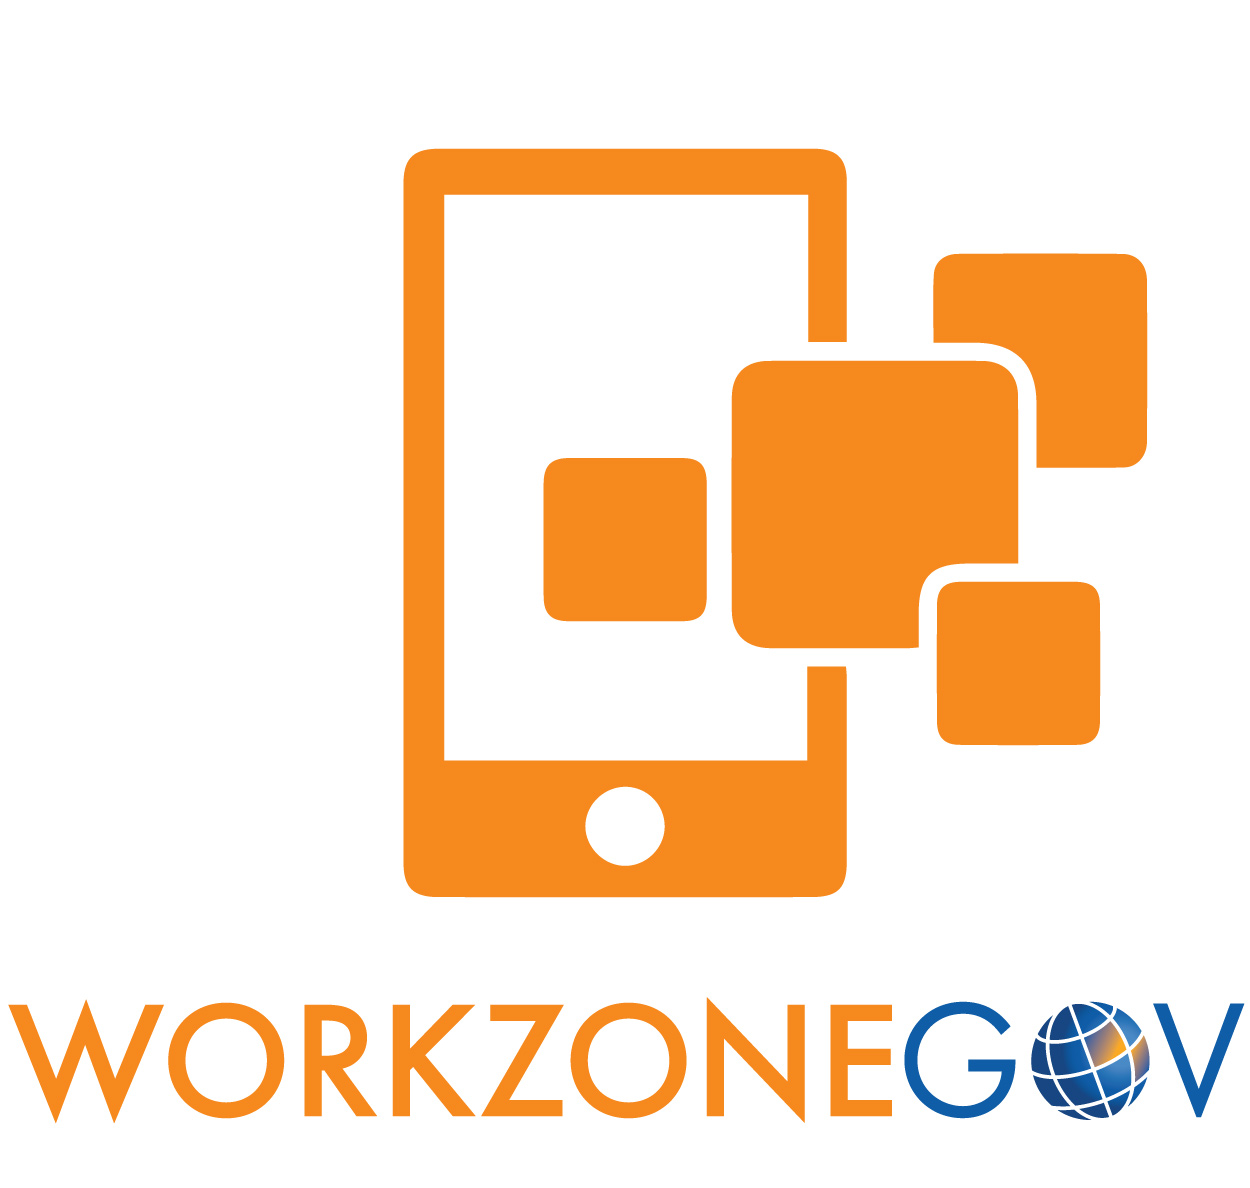 WorkzoneAppLogo